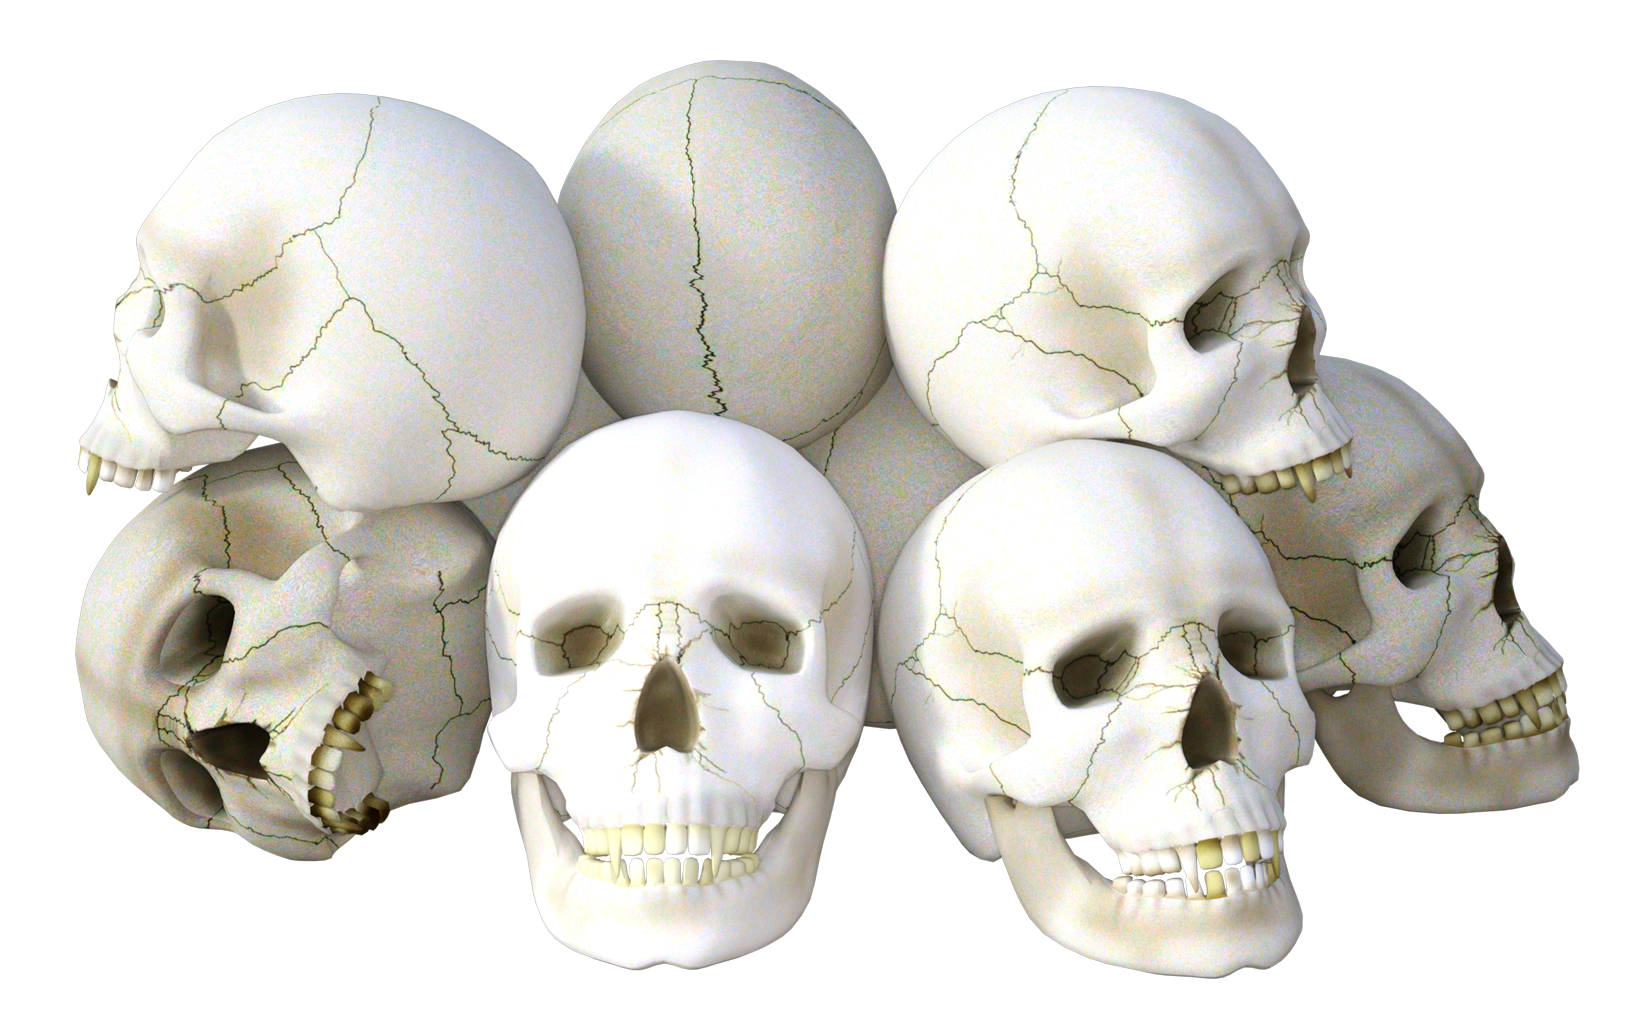 Hdpng - Skeleton Head, Transparent background PNG HD thumbnail